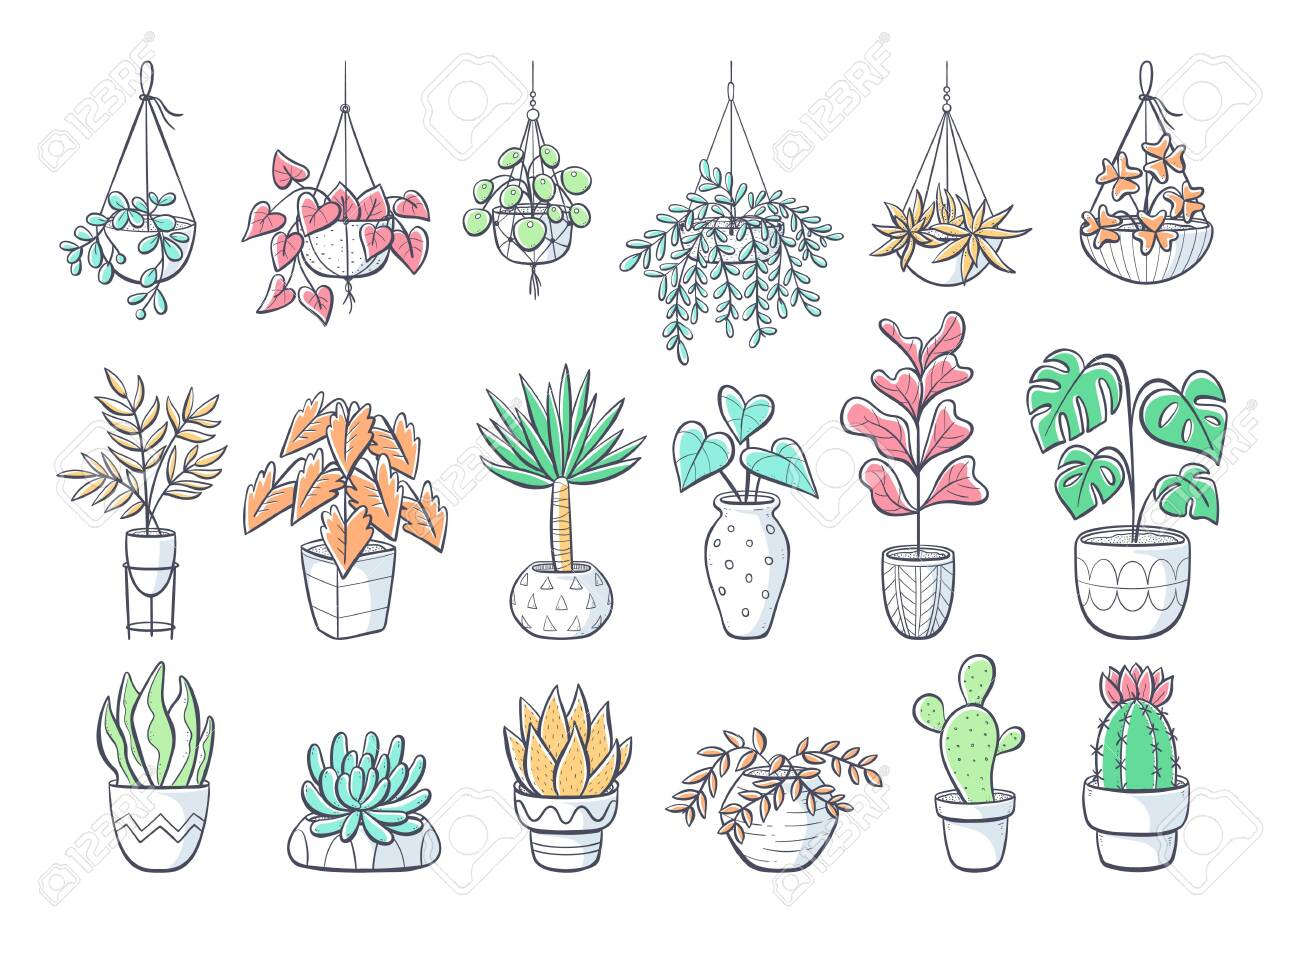 Collection Of Hand Drawn Houseplants Isolated On White Background Royalty Free Cliparts Vectors And Stock Illustration Image 143528841